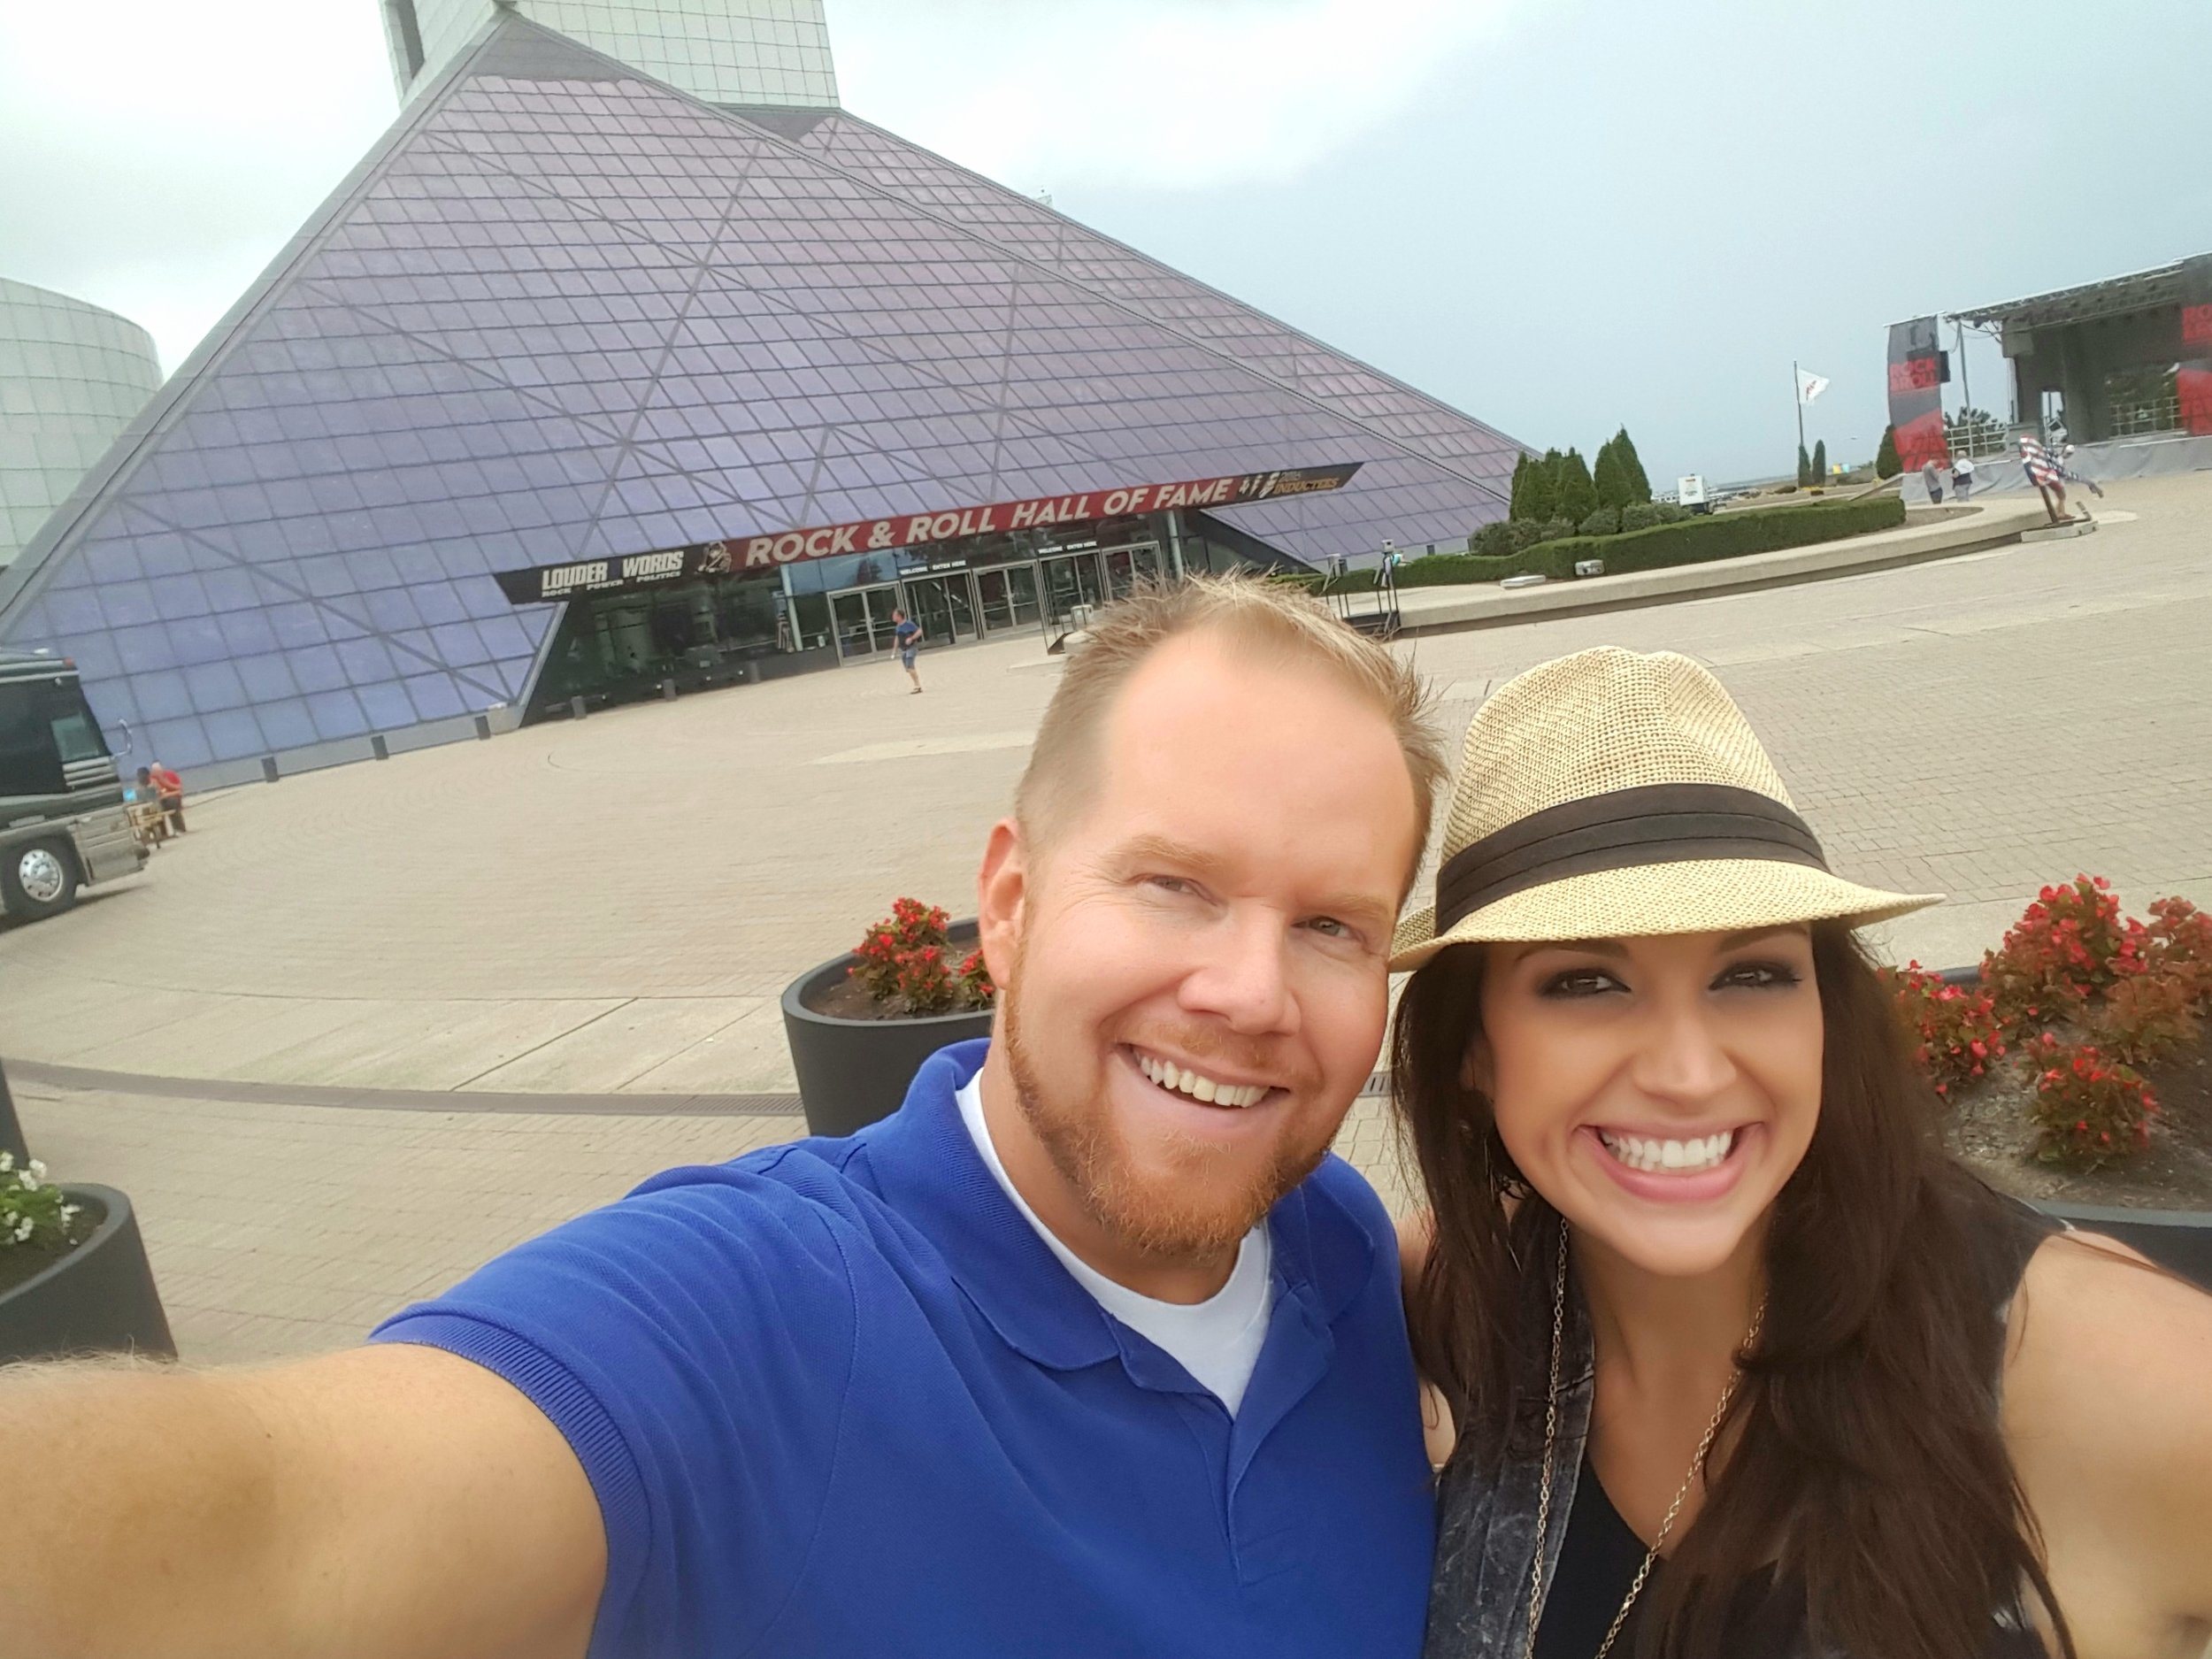 Michael Mackie and Kristi Capel in front of the Rock Hall's famed pyramid